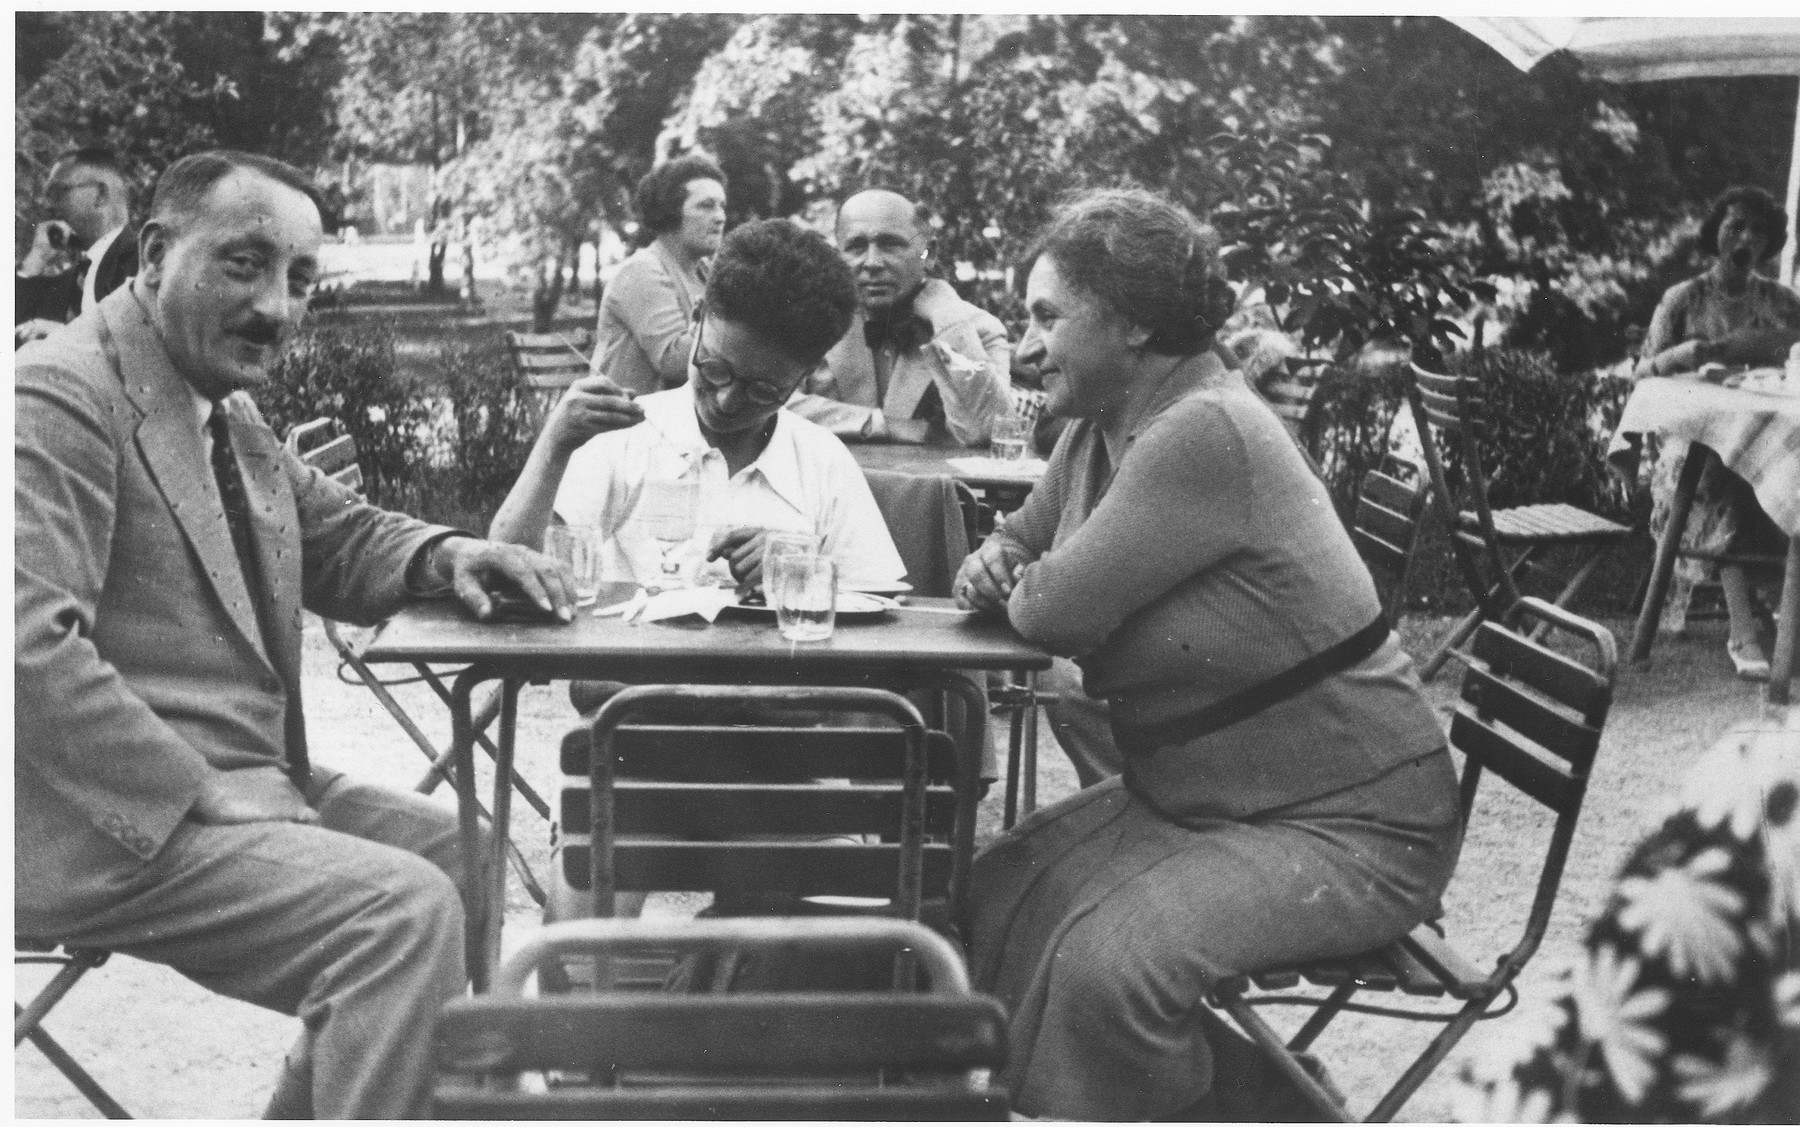 Robert and Elizabeth Benda sit with their son Heinz in an outdoor cafe.